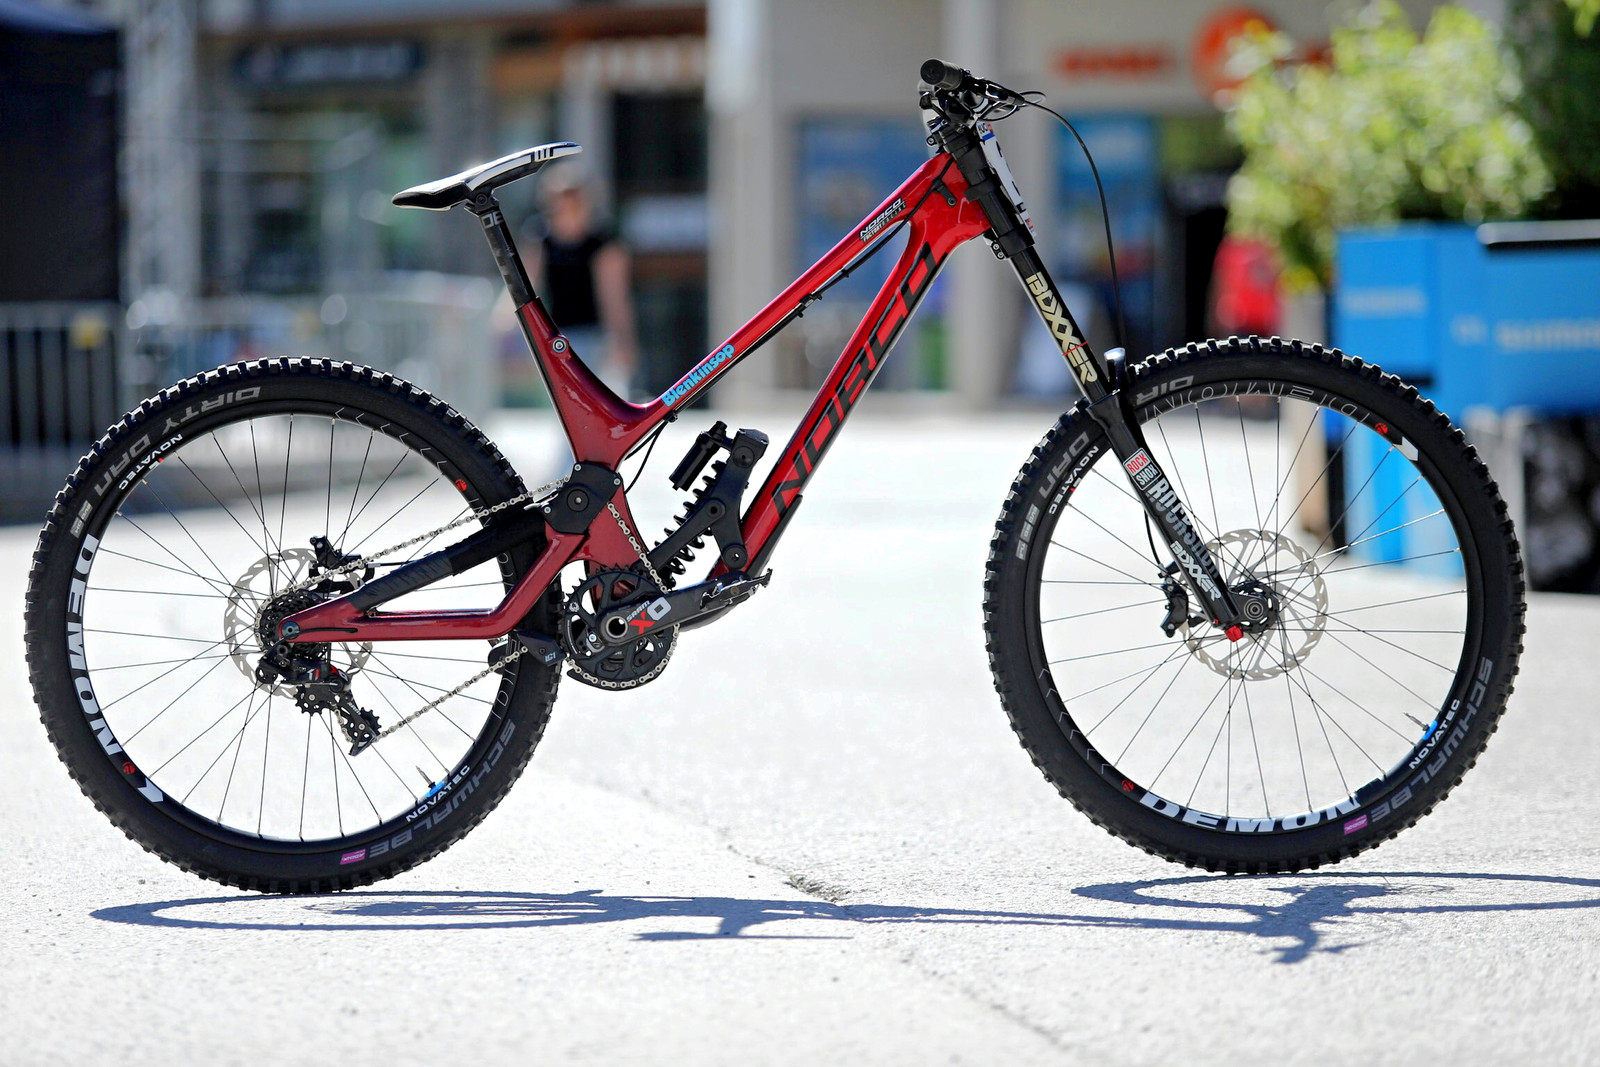 Sam Blenkinsop's Prototype Norco DH Bike - 2017 Leogang World Cup Pit Bits - Mountain Biking Pictures - Vital MTB